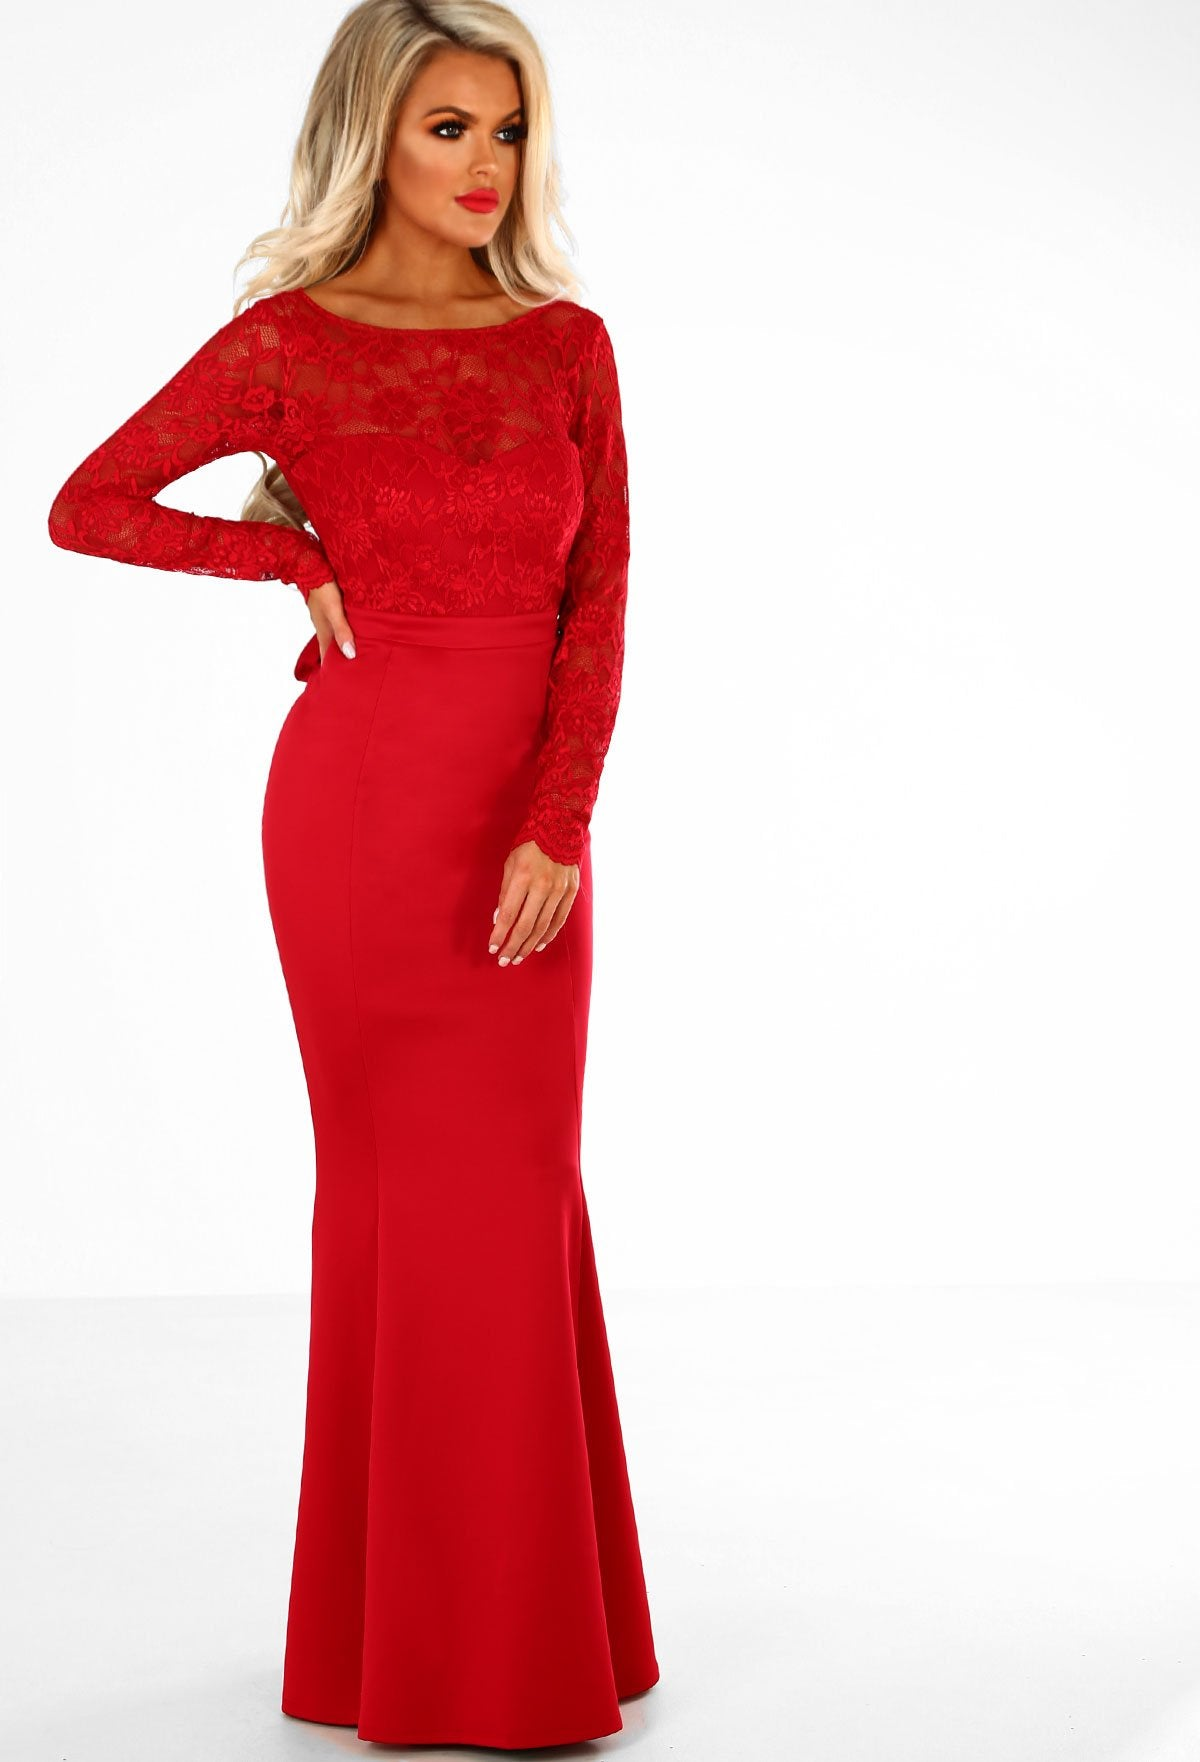 566e6d4516a1 Addicted To Love Red Lace Long Sleeve Bow Back Maxi Dress – Pink ...